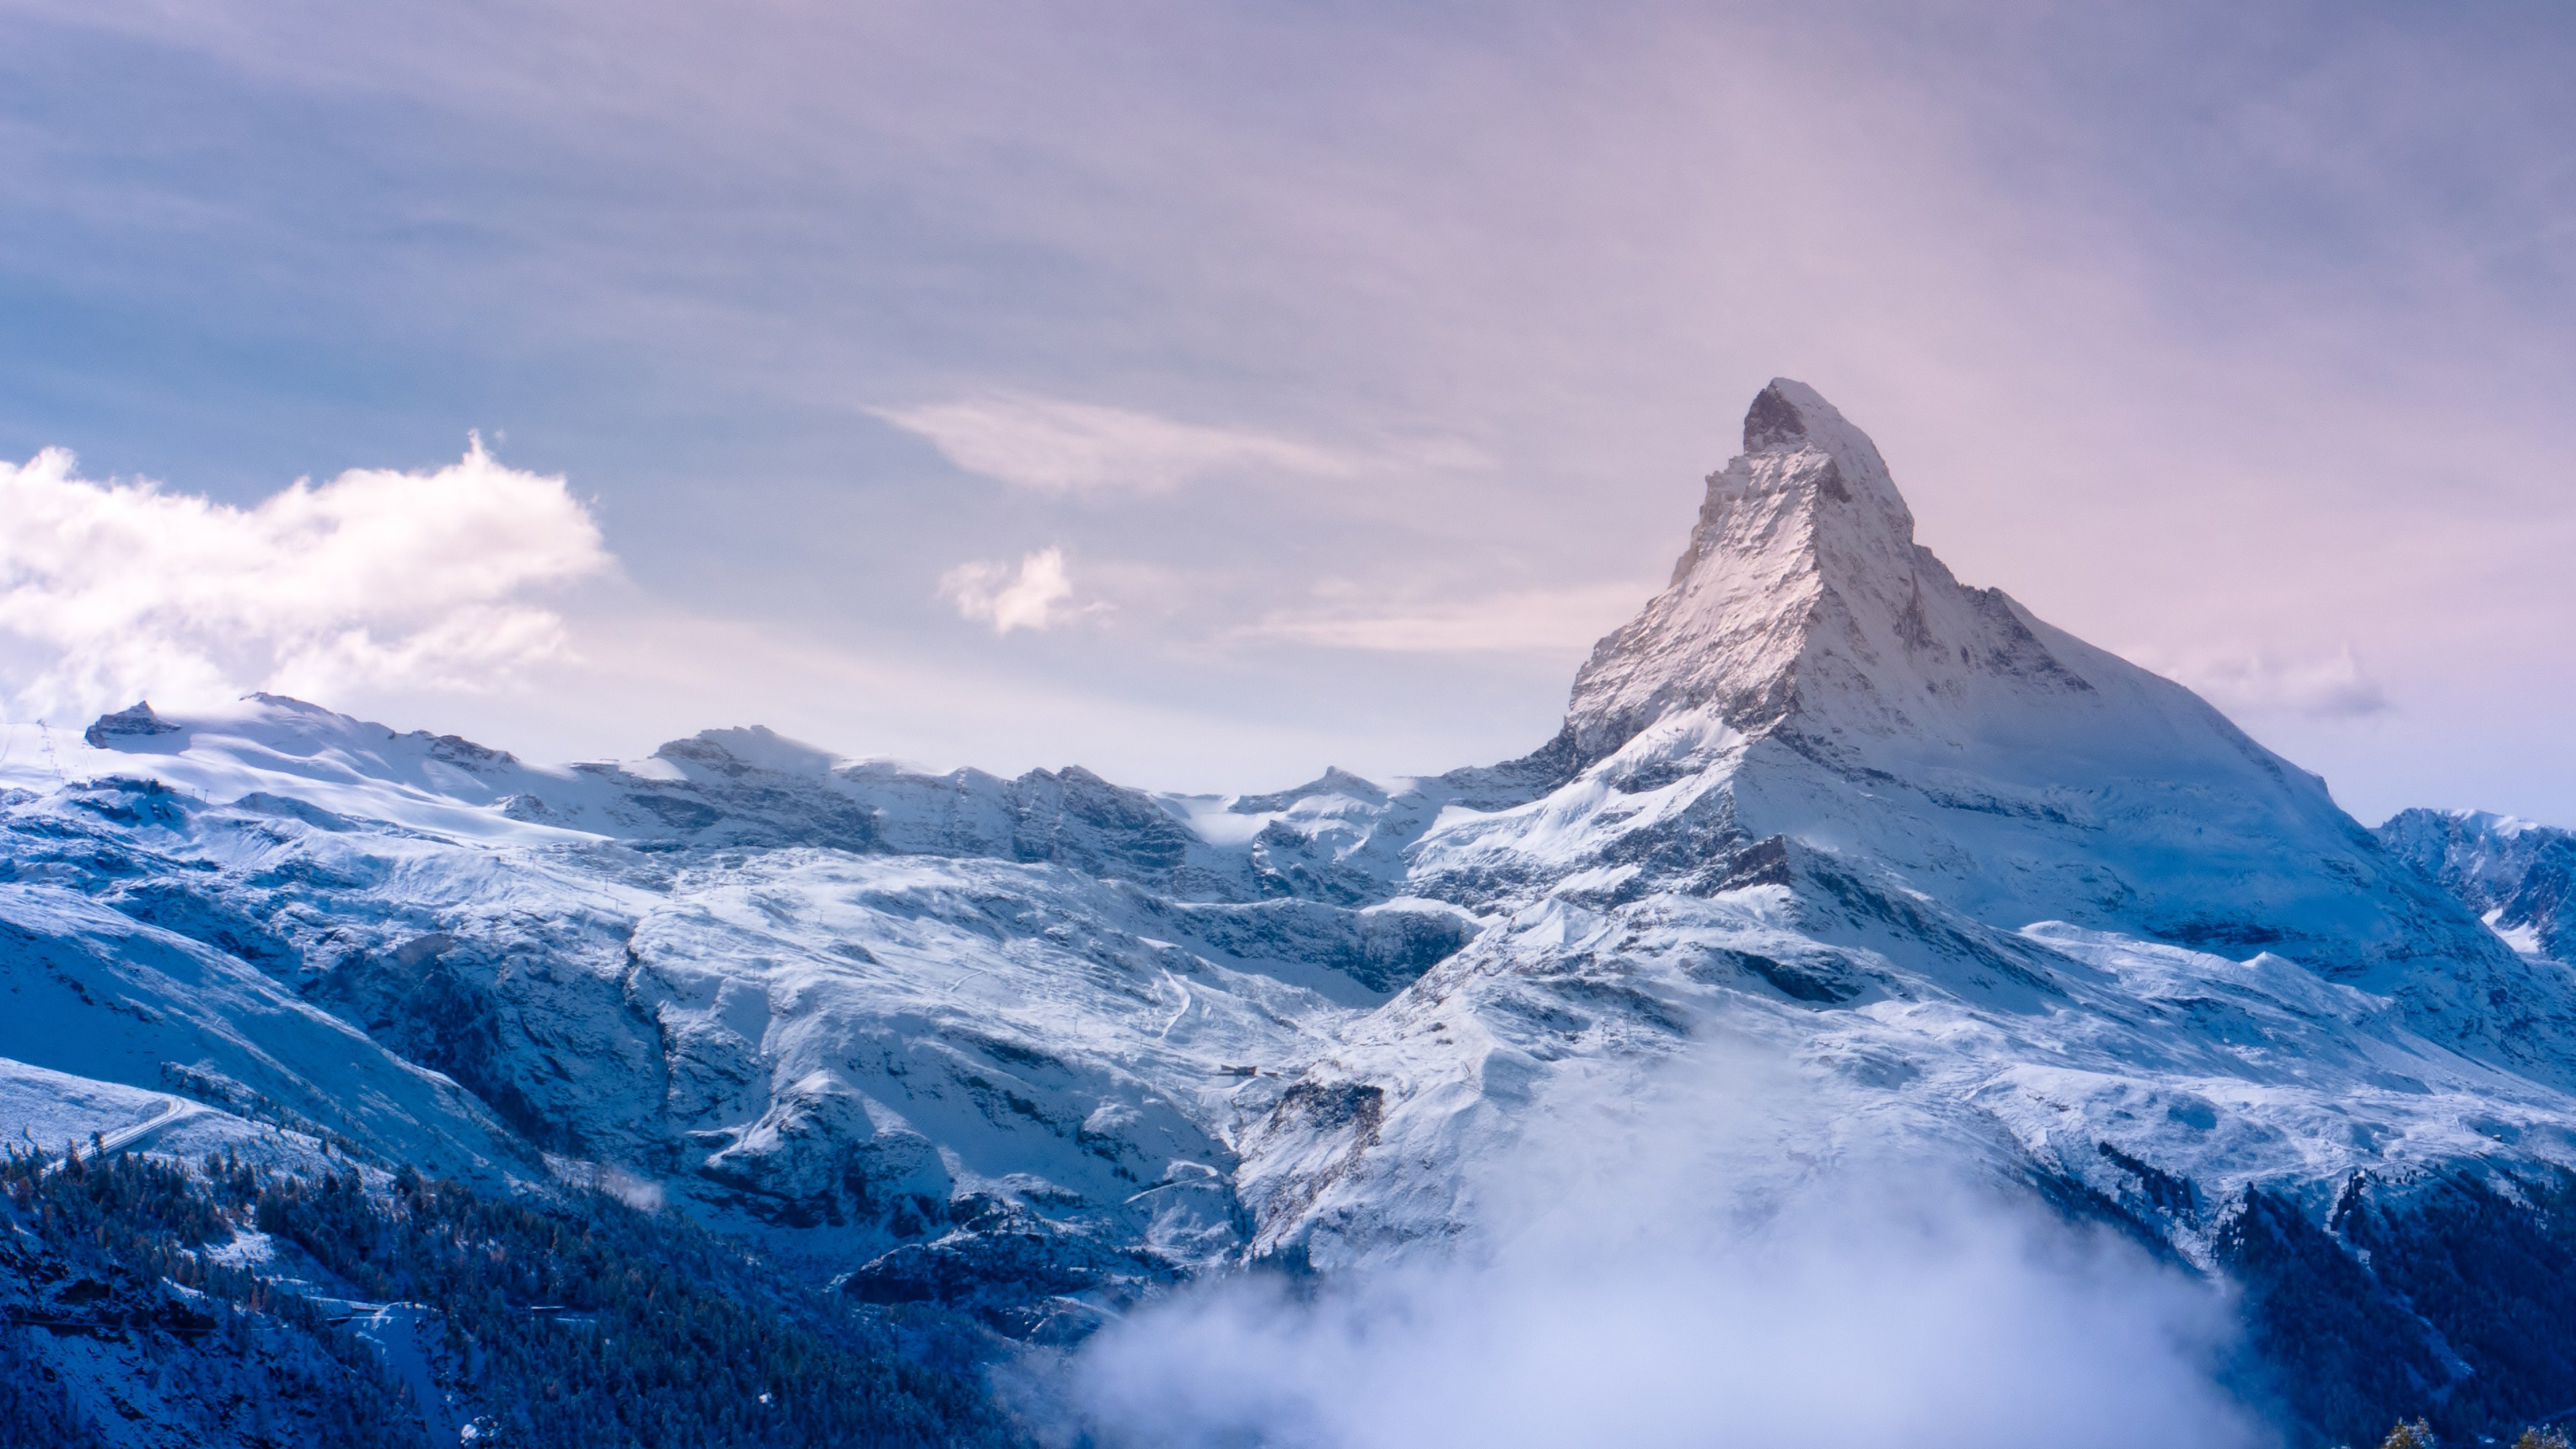 4k wallpaper mountains wallpapersafari - Desktop wallpaper 4k ...